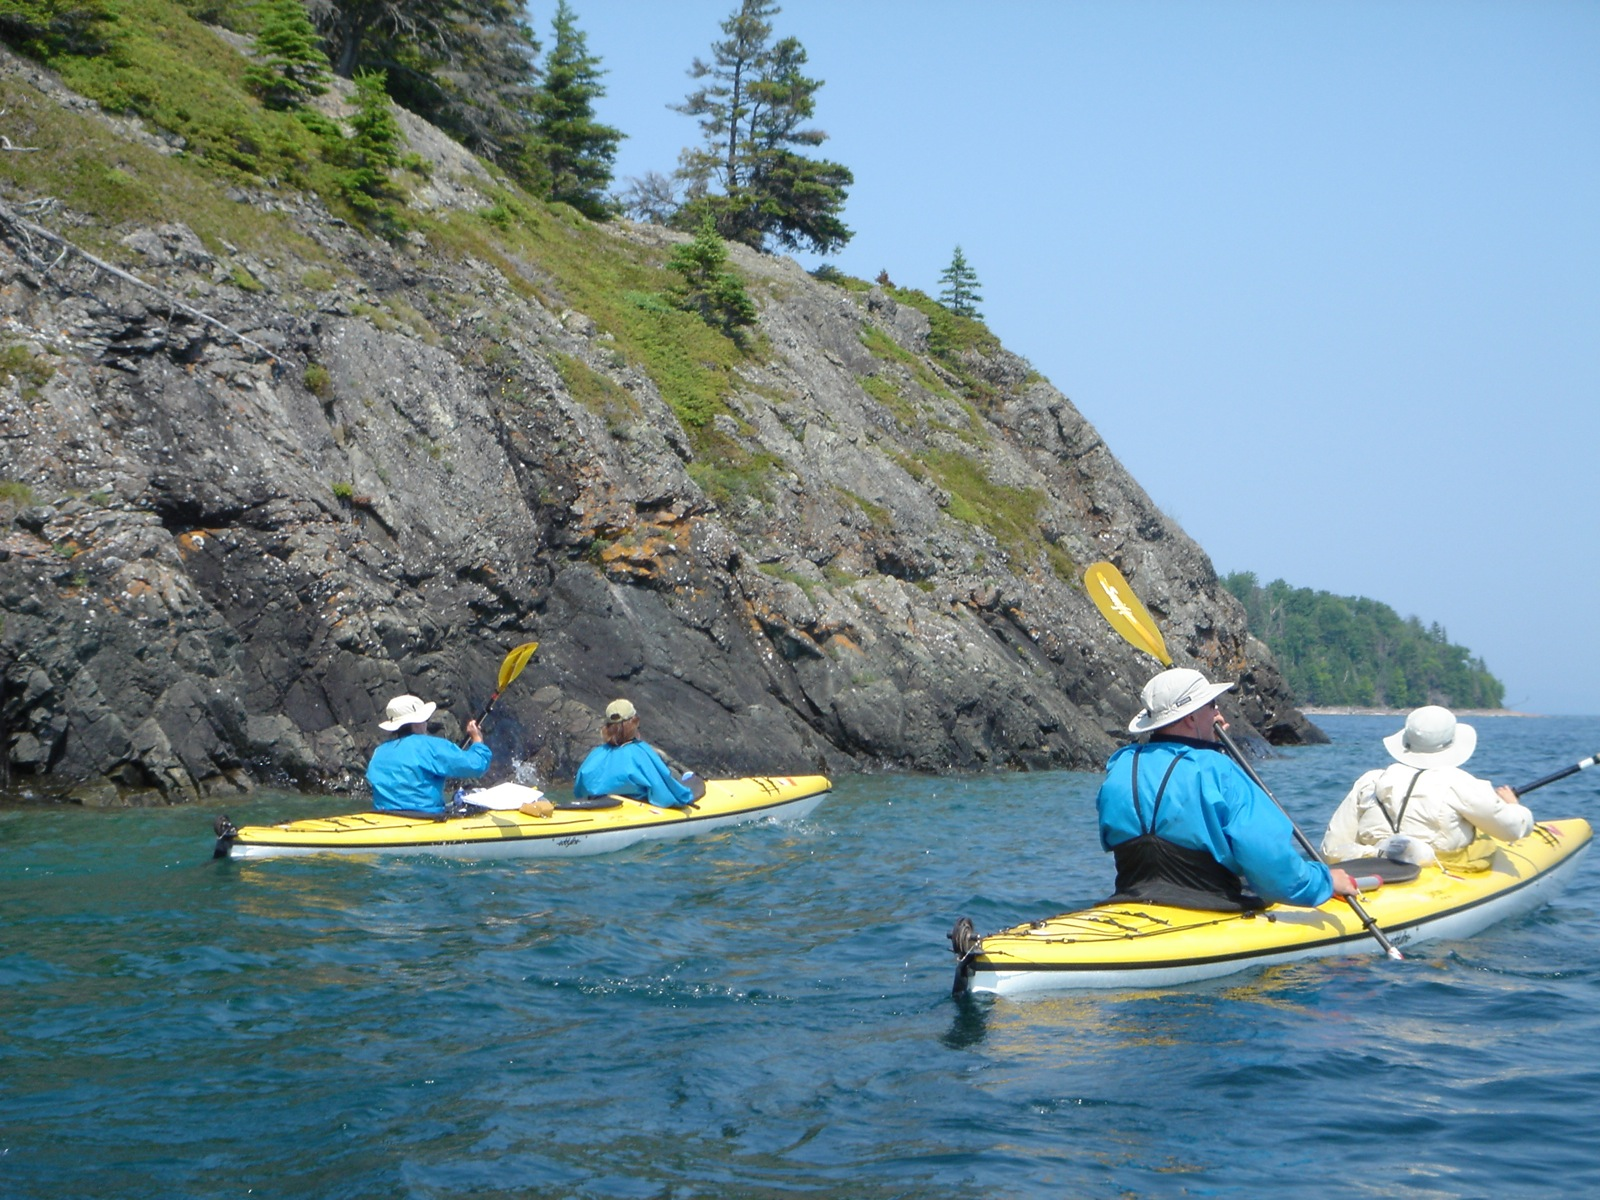 Two tandem sea kayaks paddle around the rocky shore of Shell Island on a sunny day.